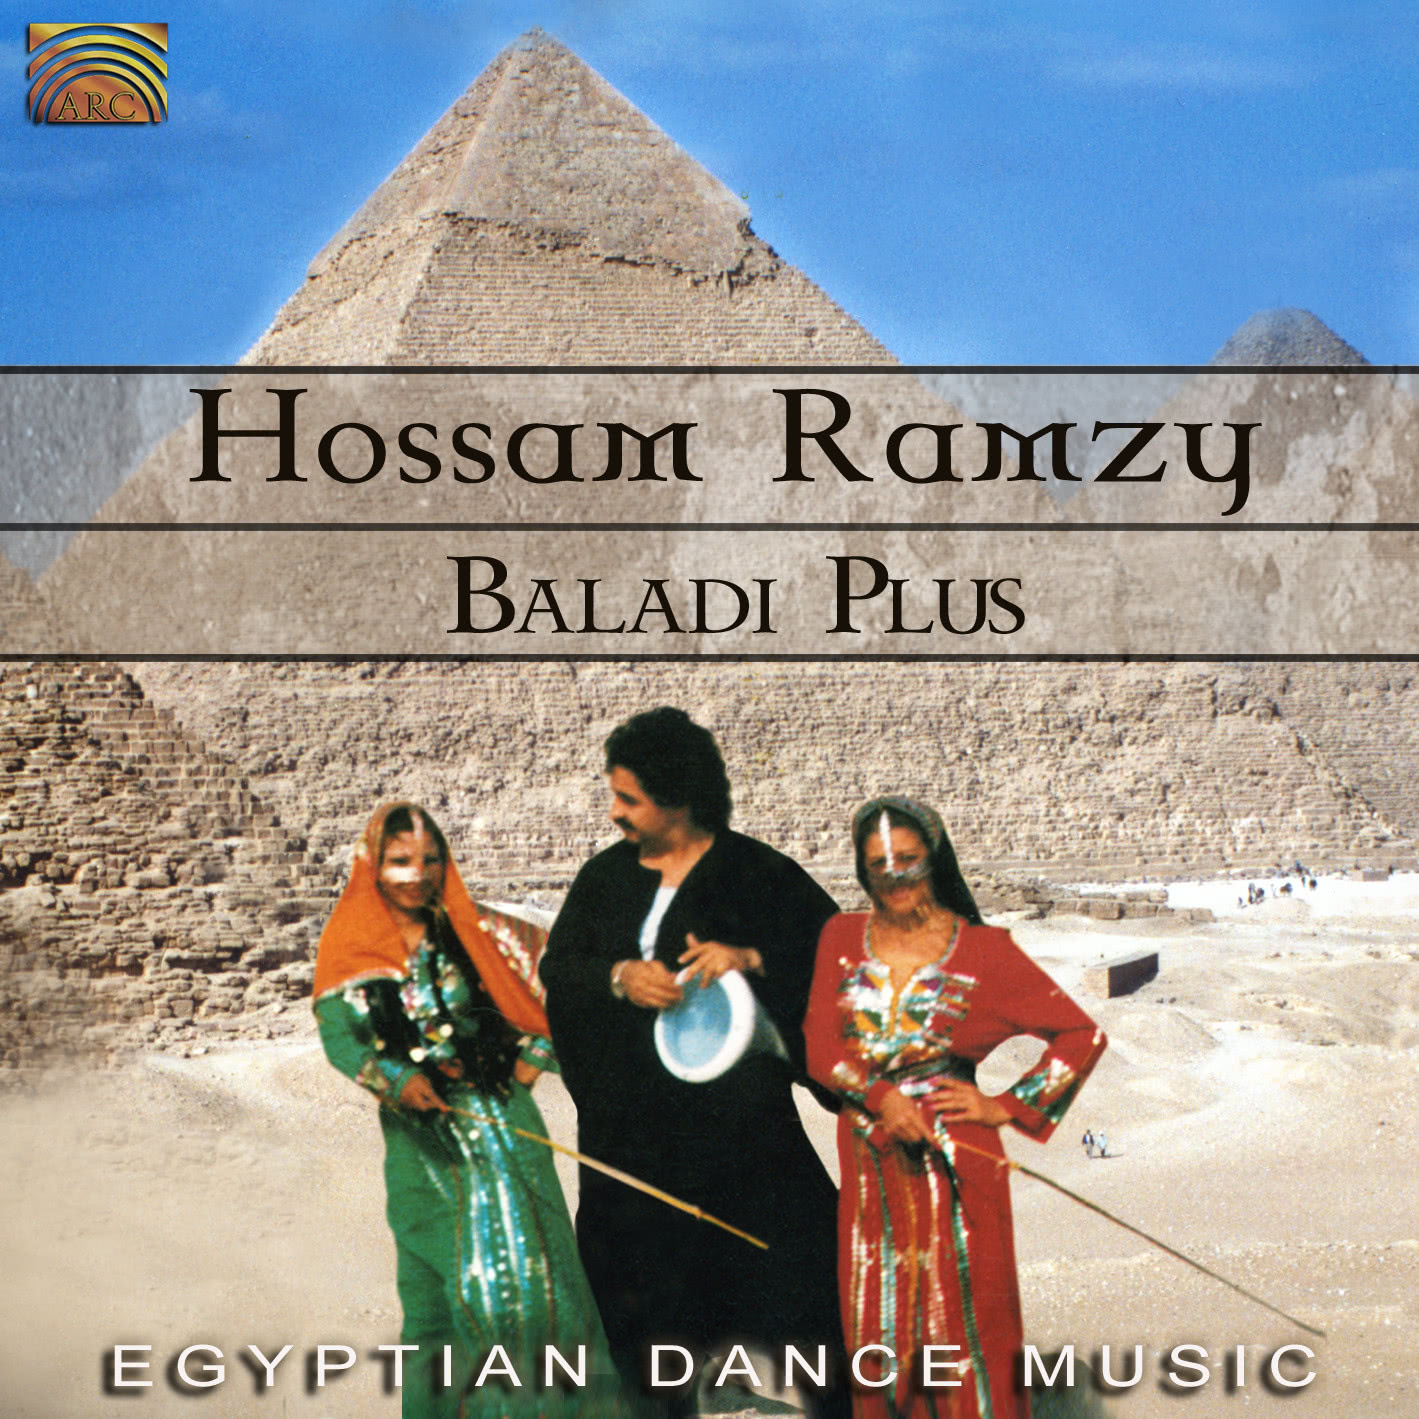 EUCD2361 Baladi Plus - Egyptian Dance Music